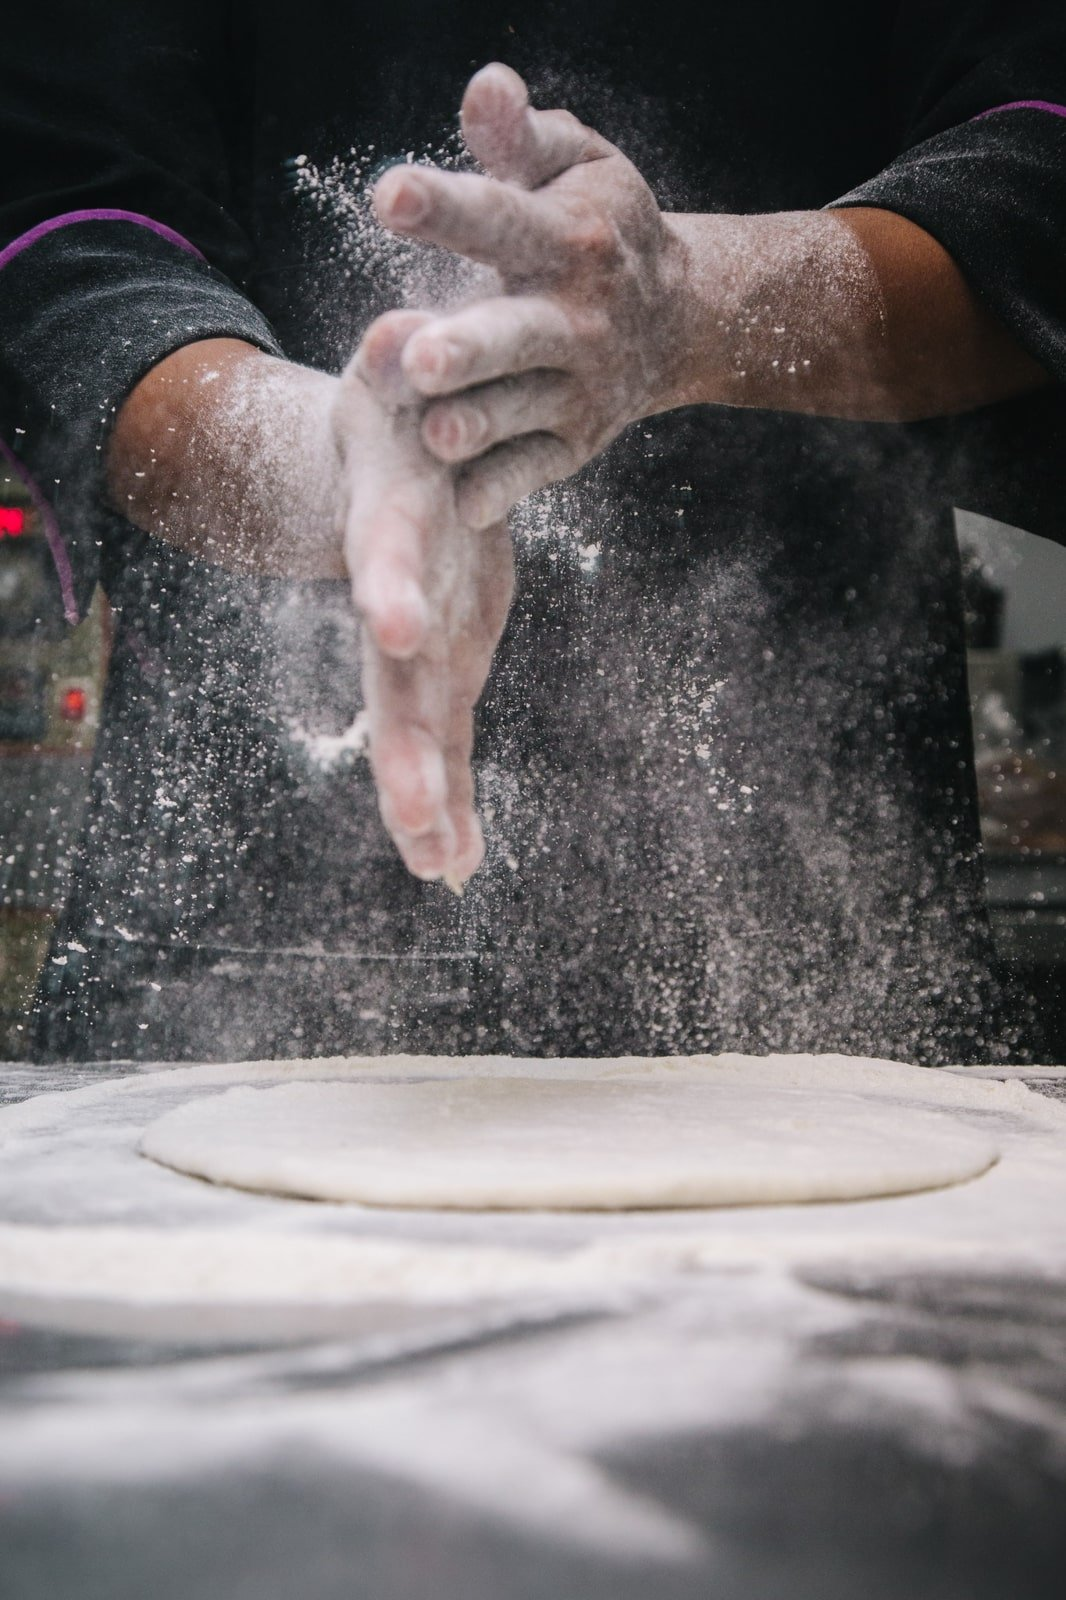 We're breaking down exactly how flour is made, the difference between bleached and unbleached flour, and why you should care about the flour you use in your baking recipes. Read more on naturallysweetkitchen.com. #flour #baking #desserts #naturallysweetkitchen #refinedsugarfree #wholewheatflour